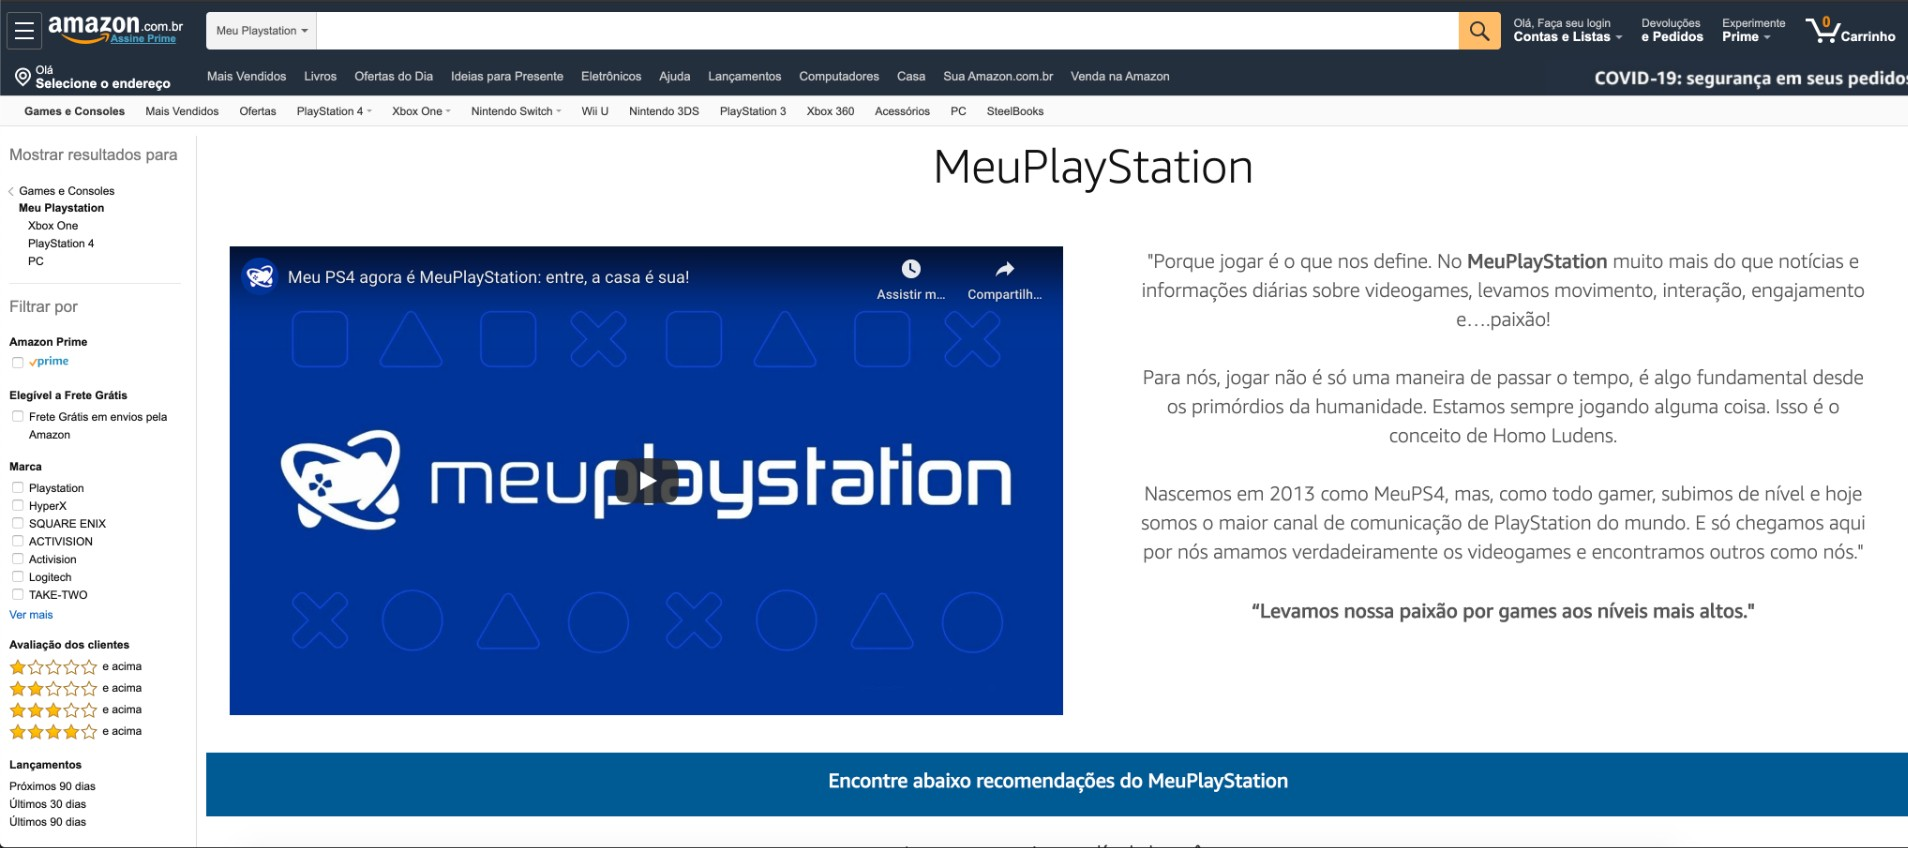 AMAZON_MEUPLAYSTATION